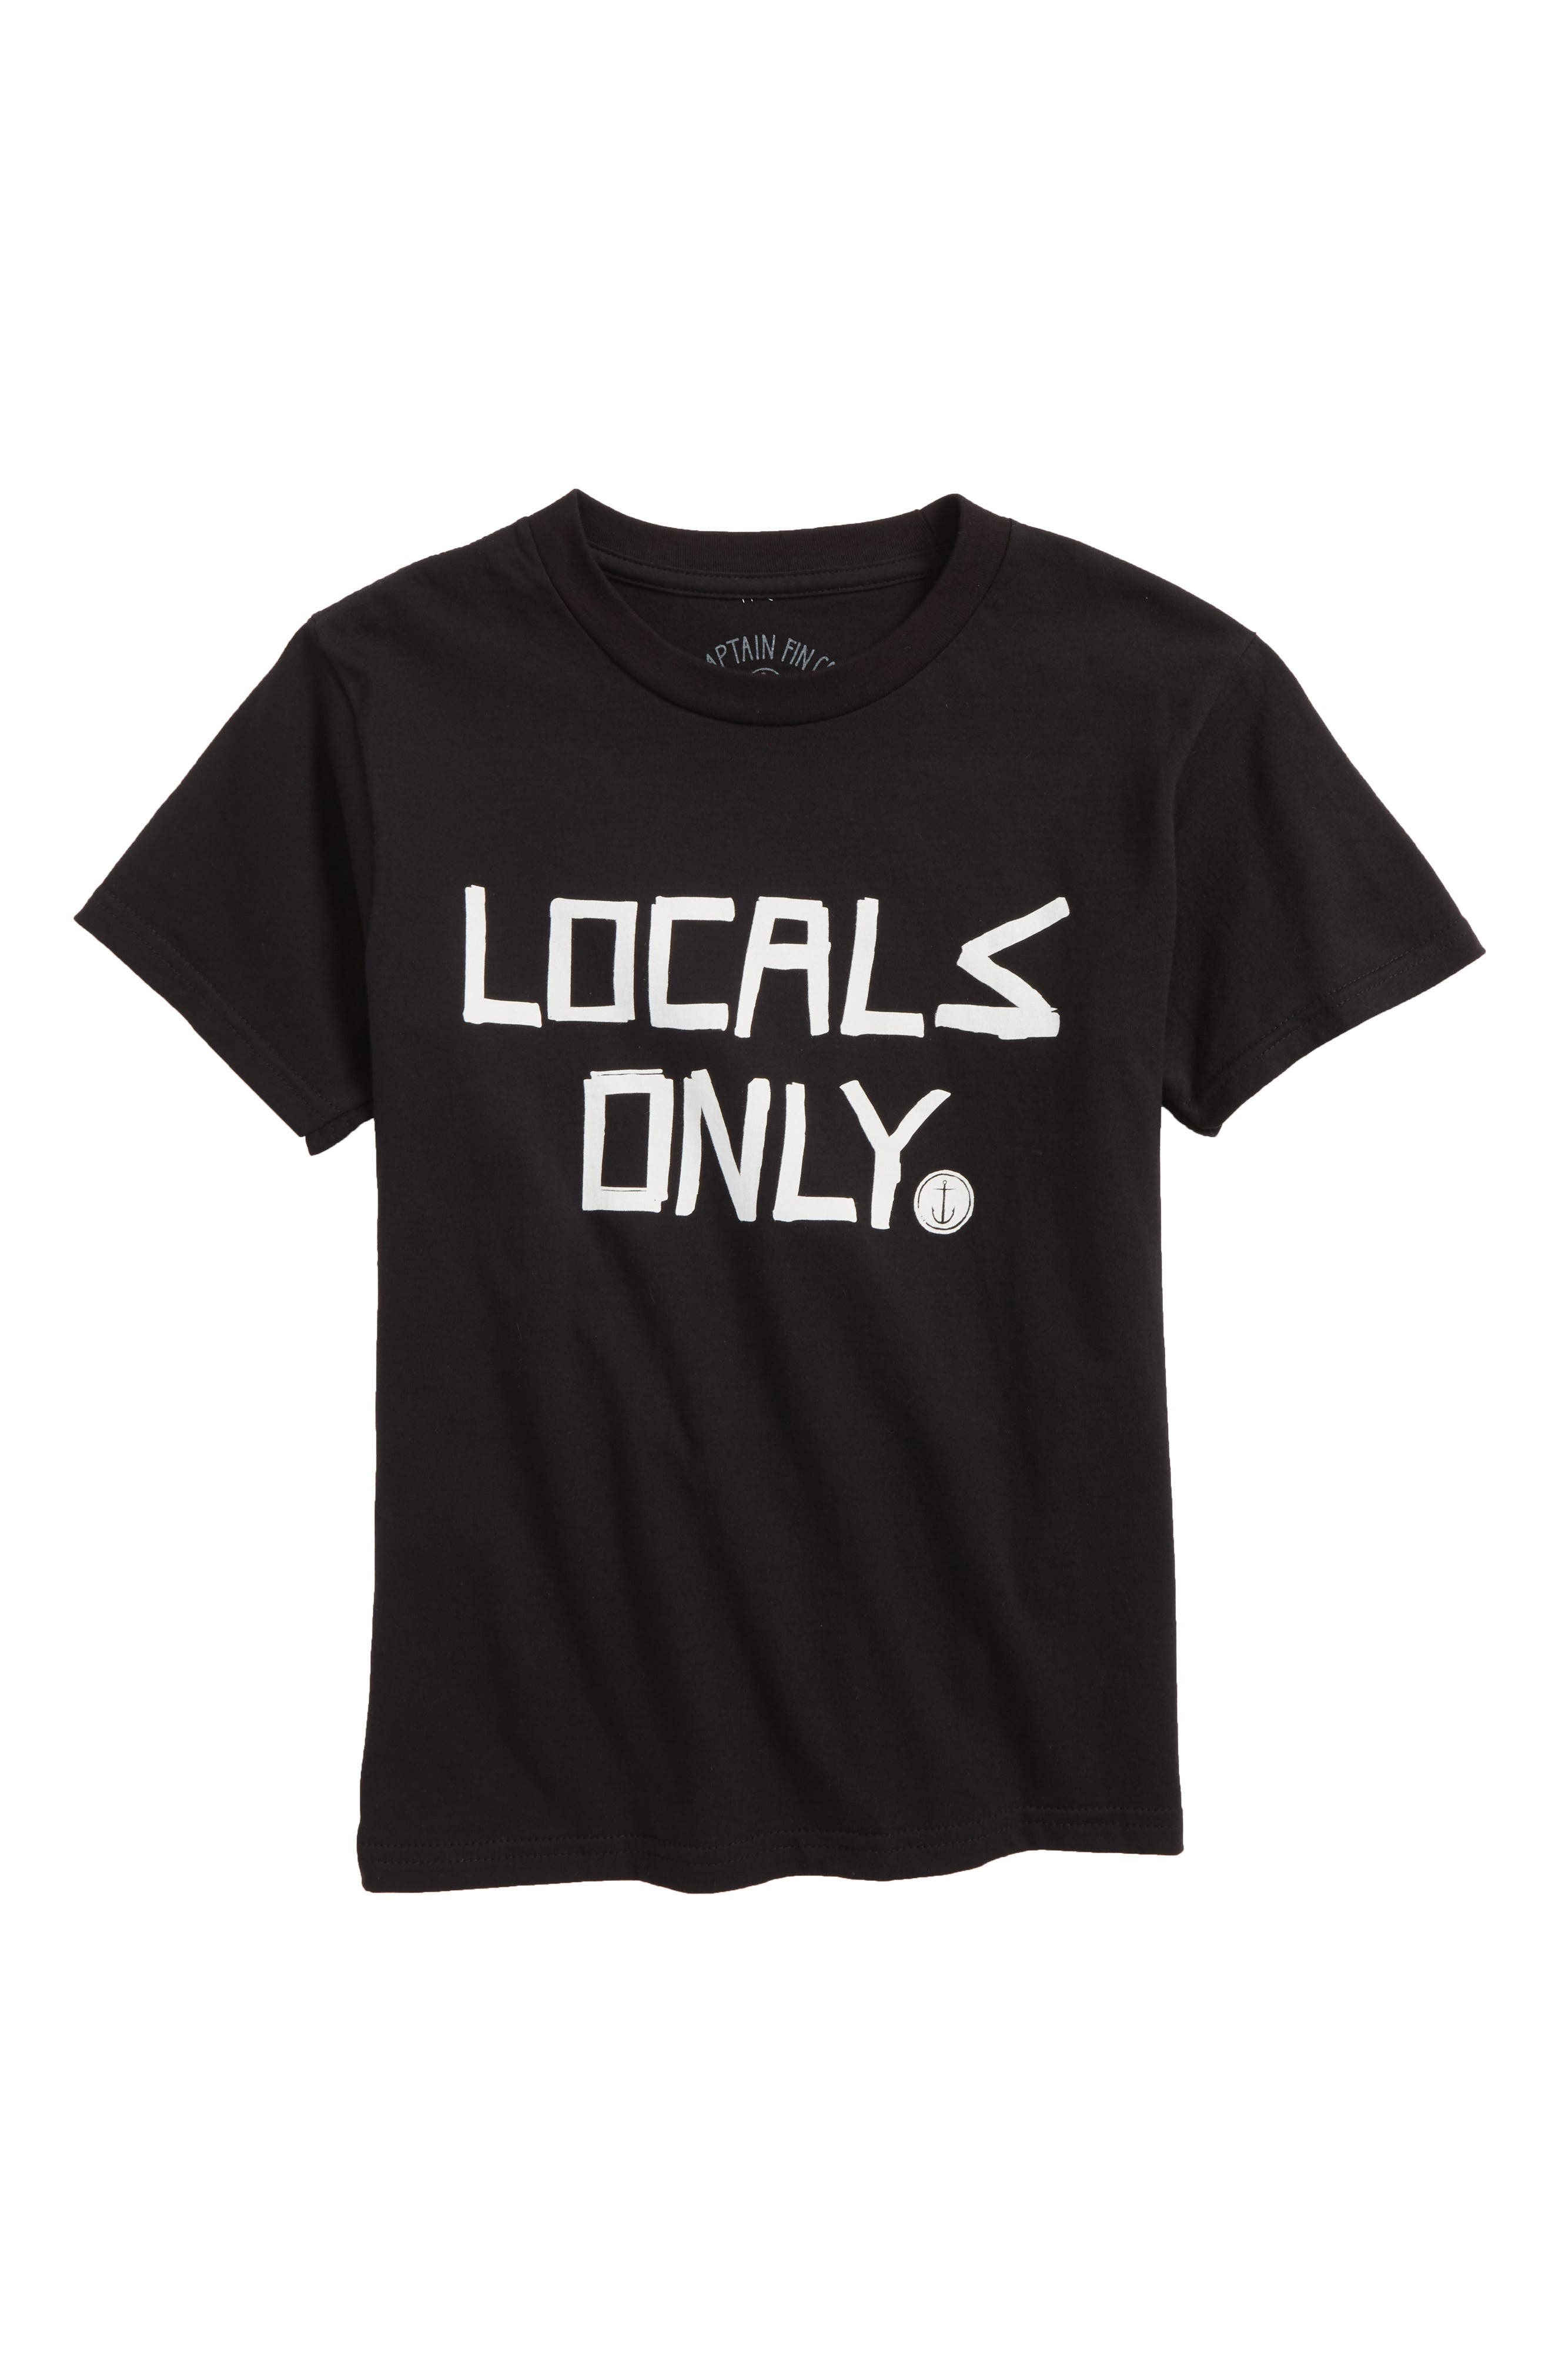 Locals Only T-Shirt,                         Main,                         color, 001